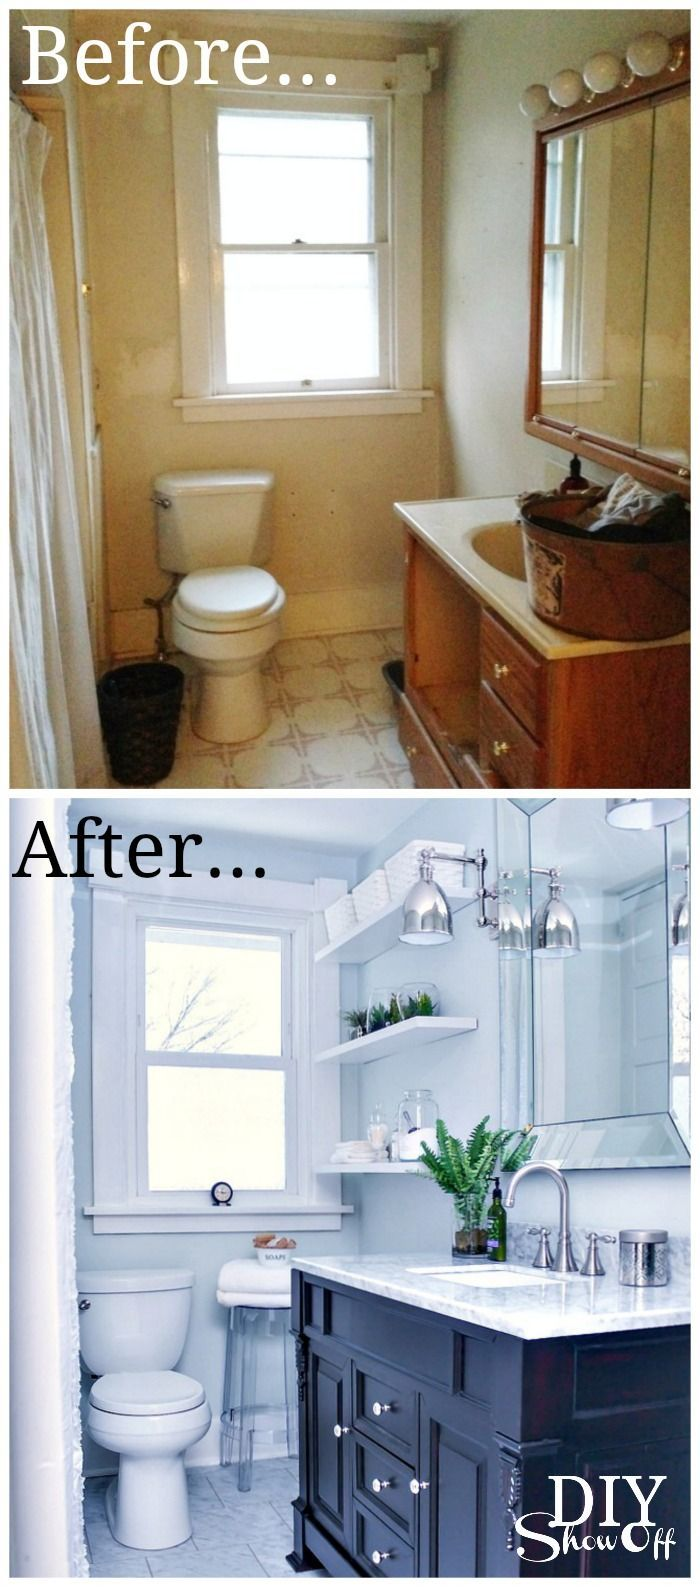 Diy Show Off Renovation Tiny Bath Diy Home Improvement